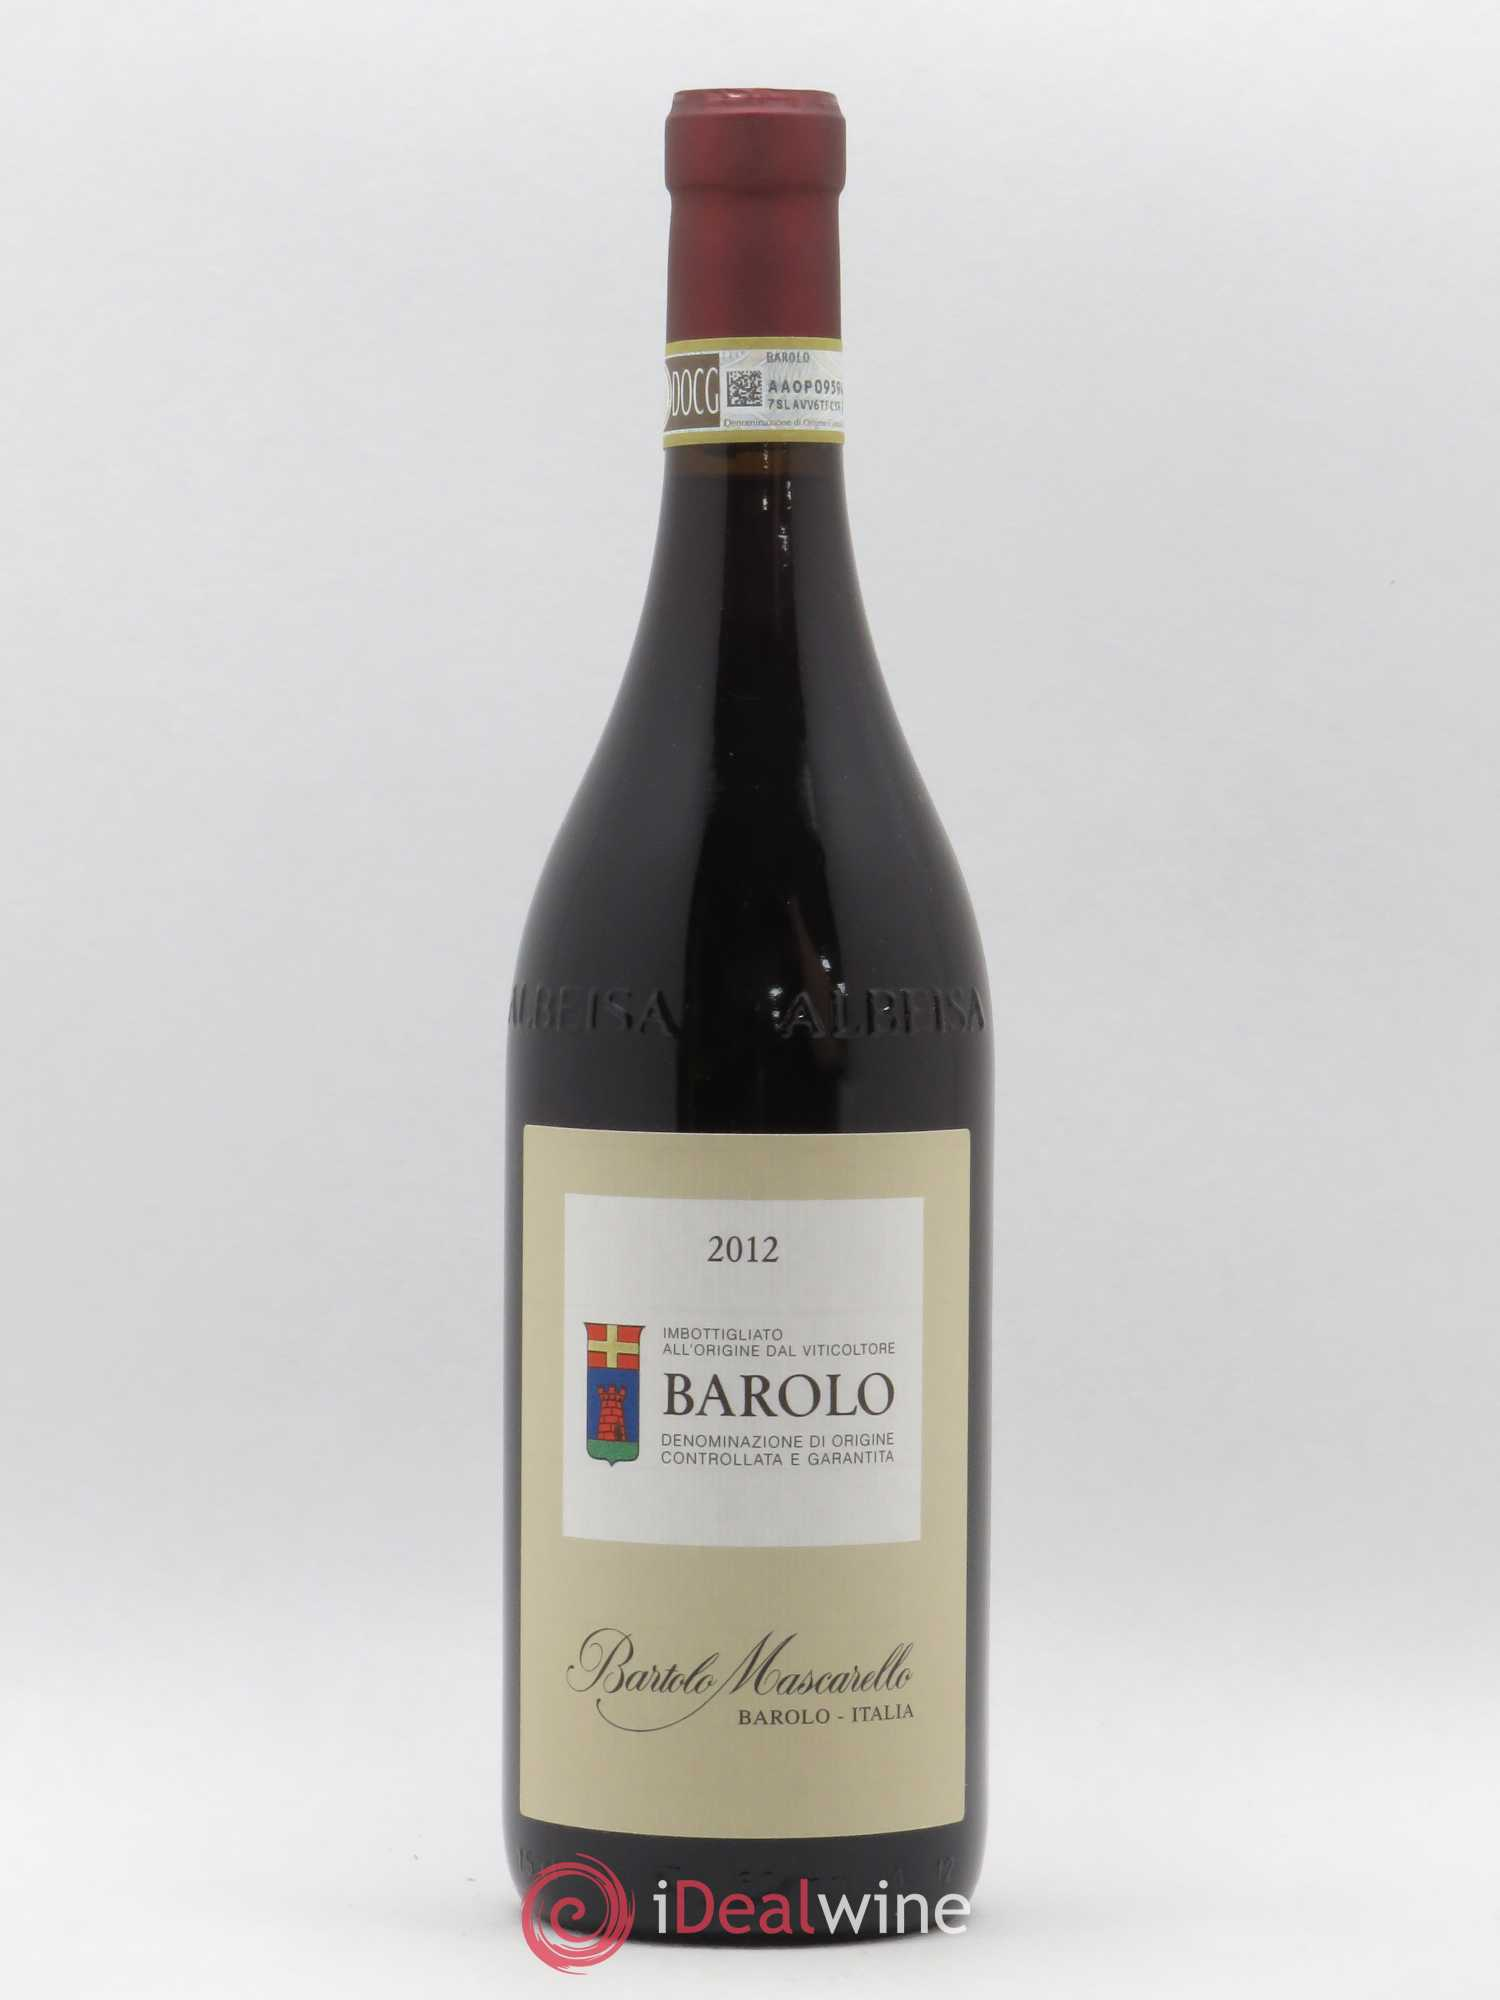 Barolo DOCG Mascarello Bartolo 2012 - Lot of 1 Bottle